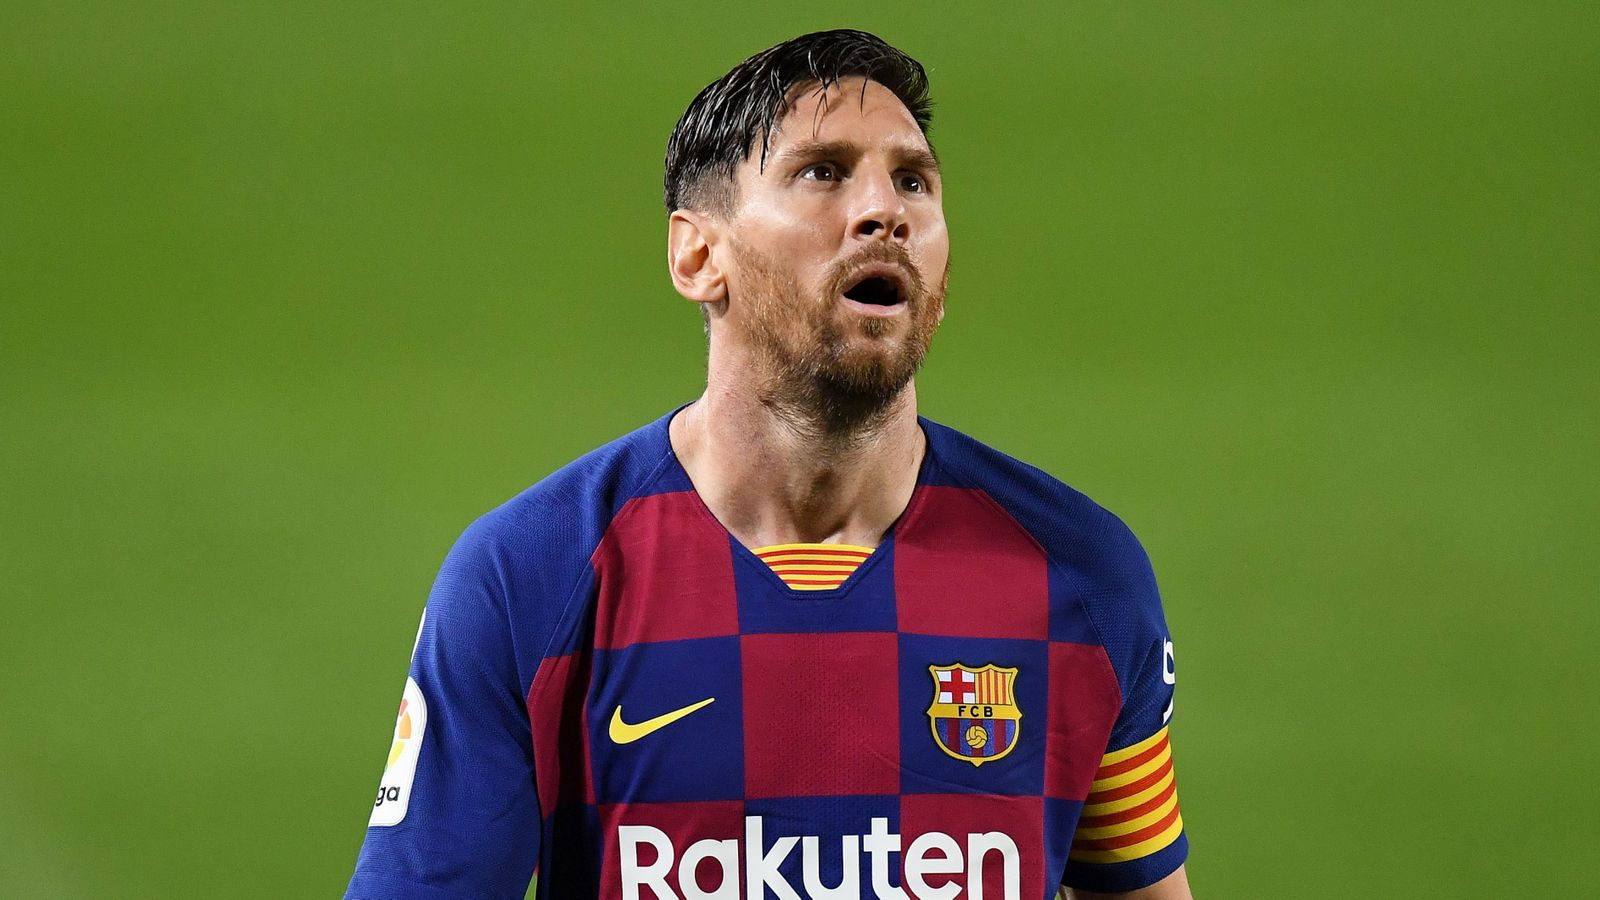 PSG owner's brother confirms Lionel Messi signing after concluding talks following Barca exit